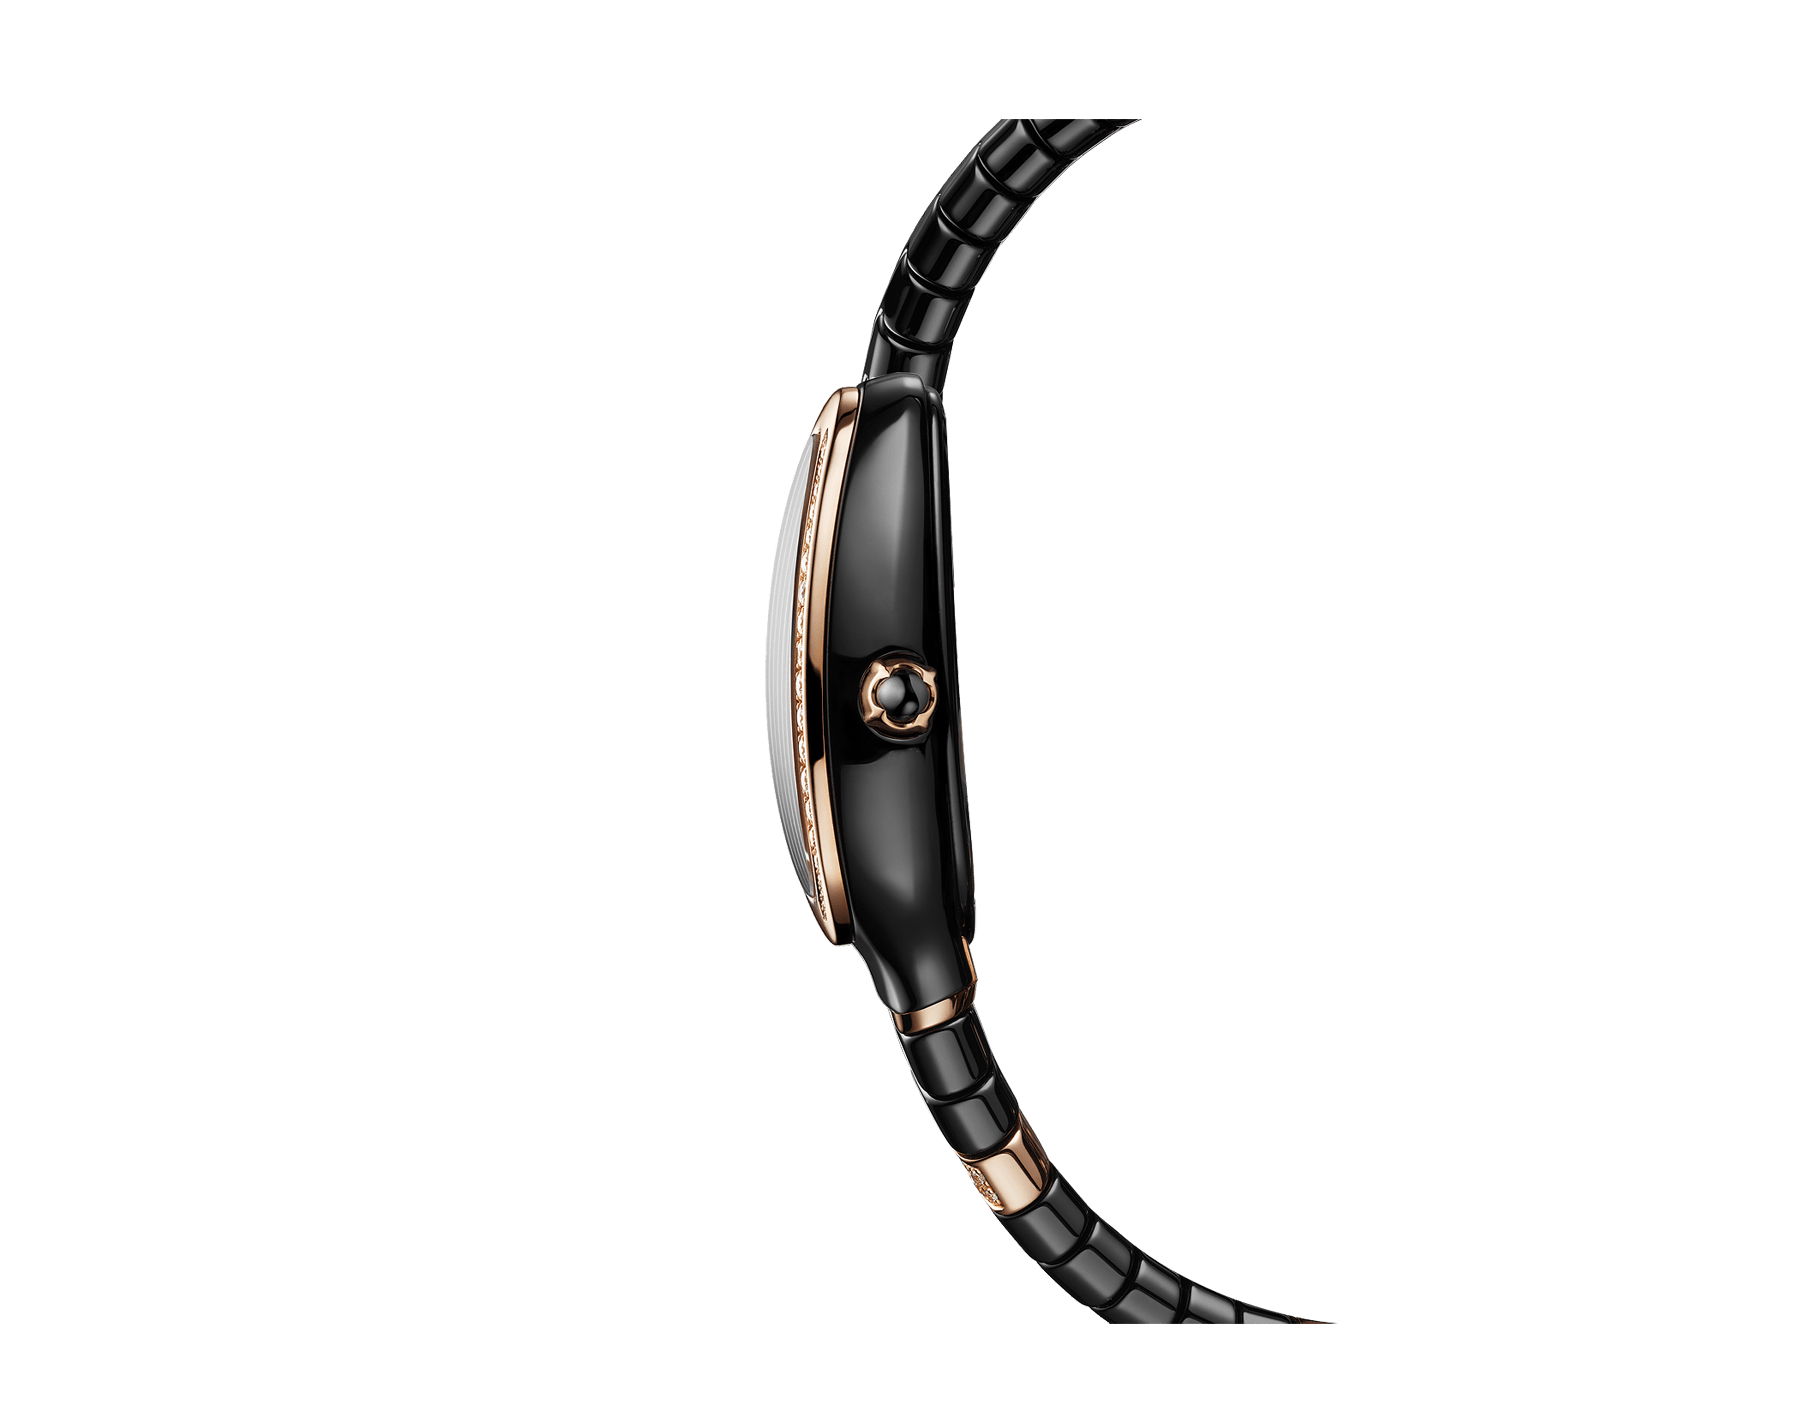 Serpenti Spiga five-spiral watch with black ceramic case, 18 kt rose gold bezel set with diamonds, black lacquered dial, black ceramic bracelet set with 18 kt rose gold elements and diamonds 102888 image 3